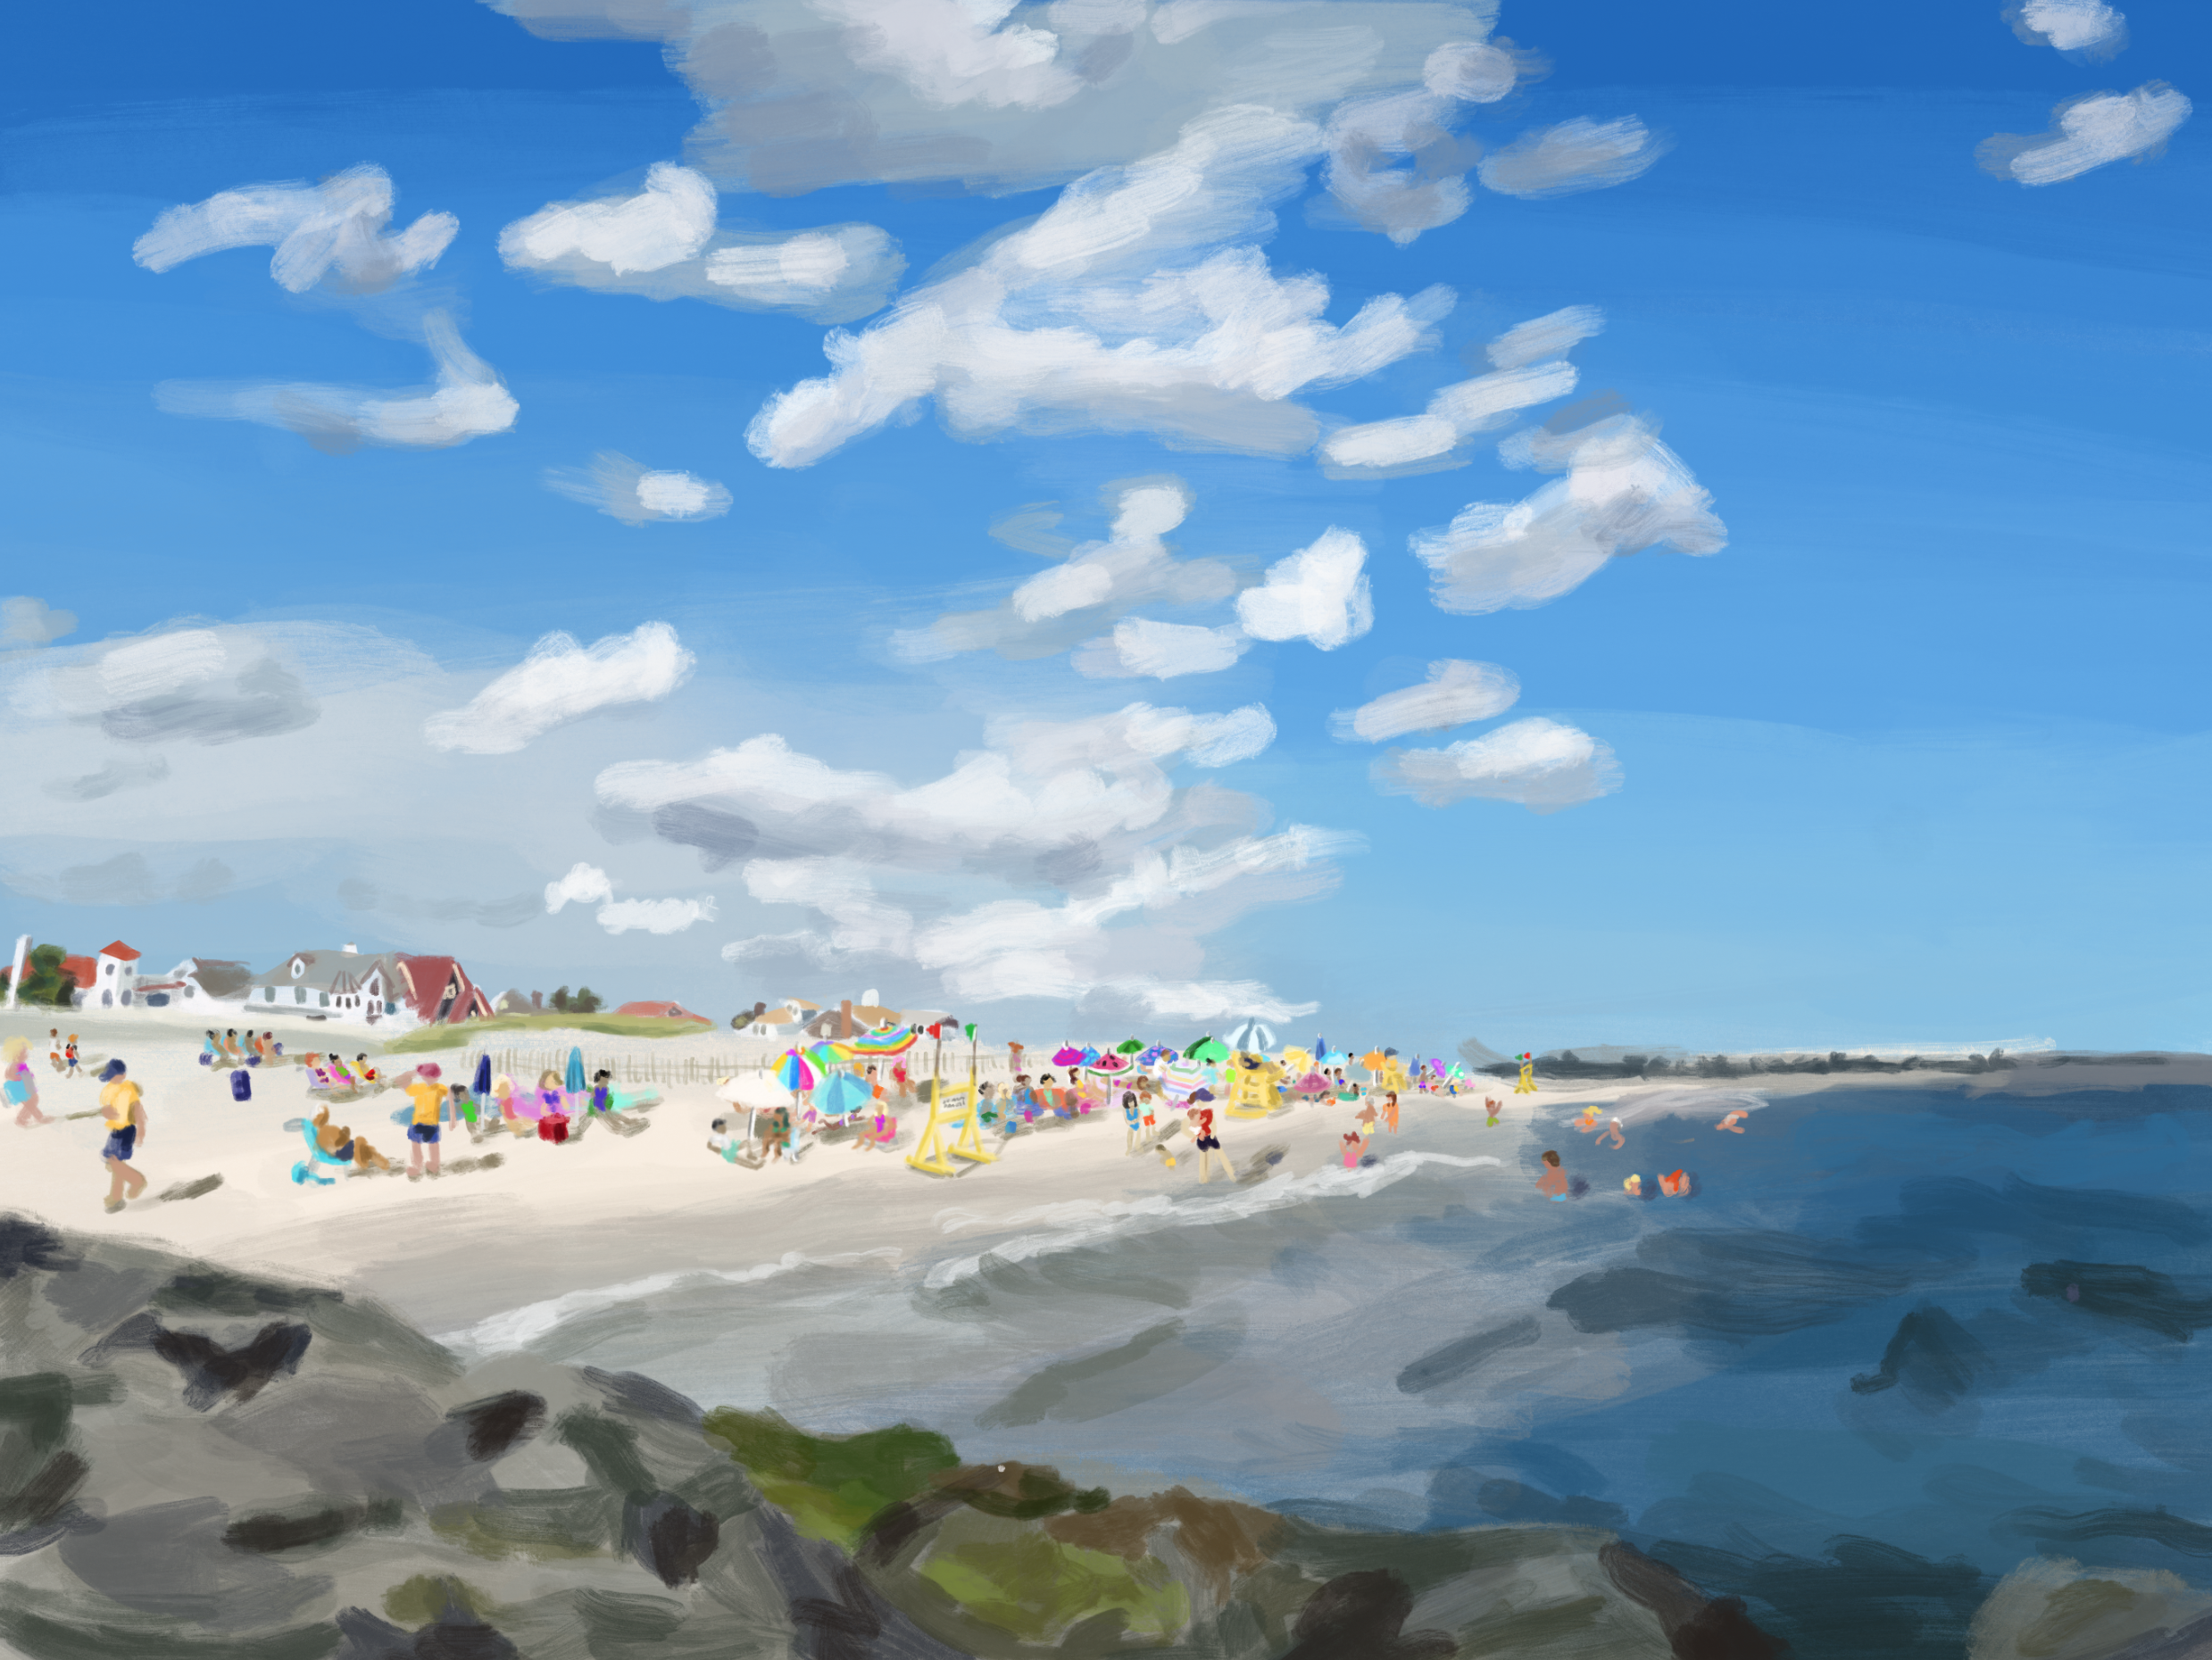 Commissioned landscape of Point Lookout, New York